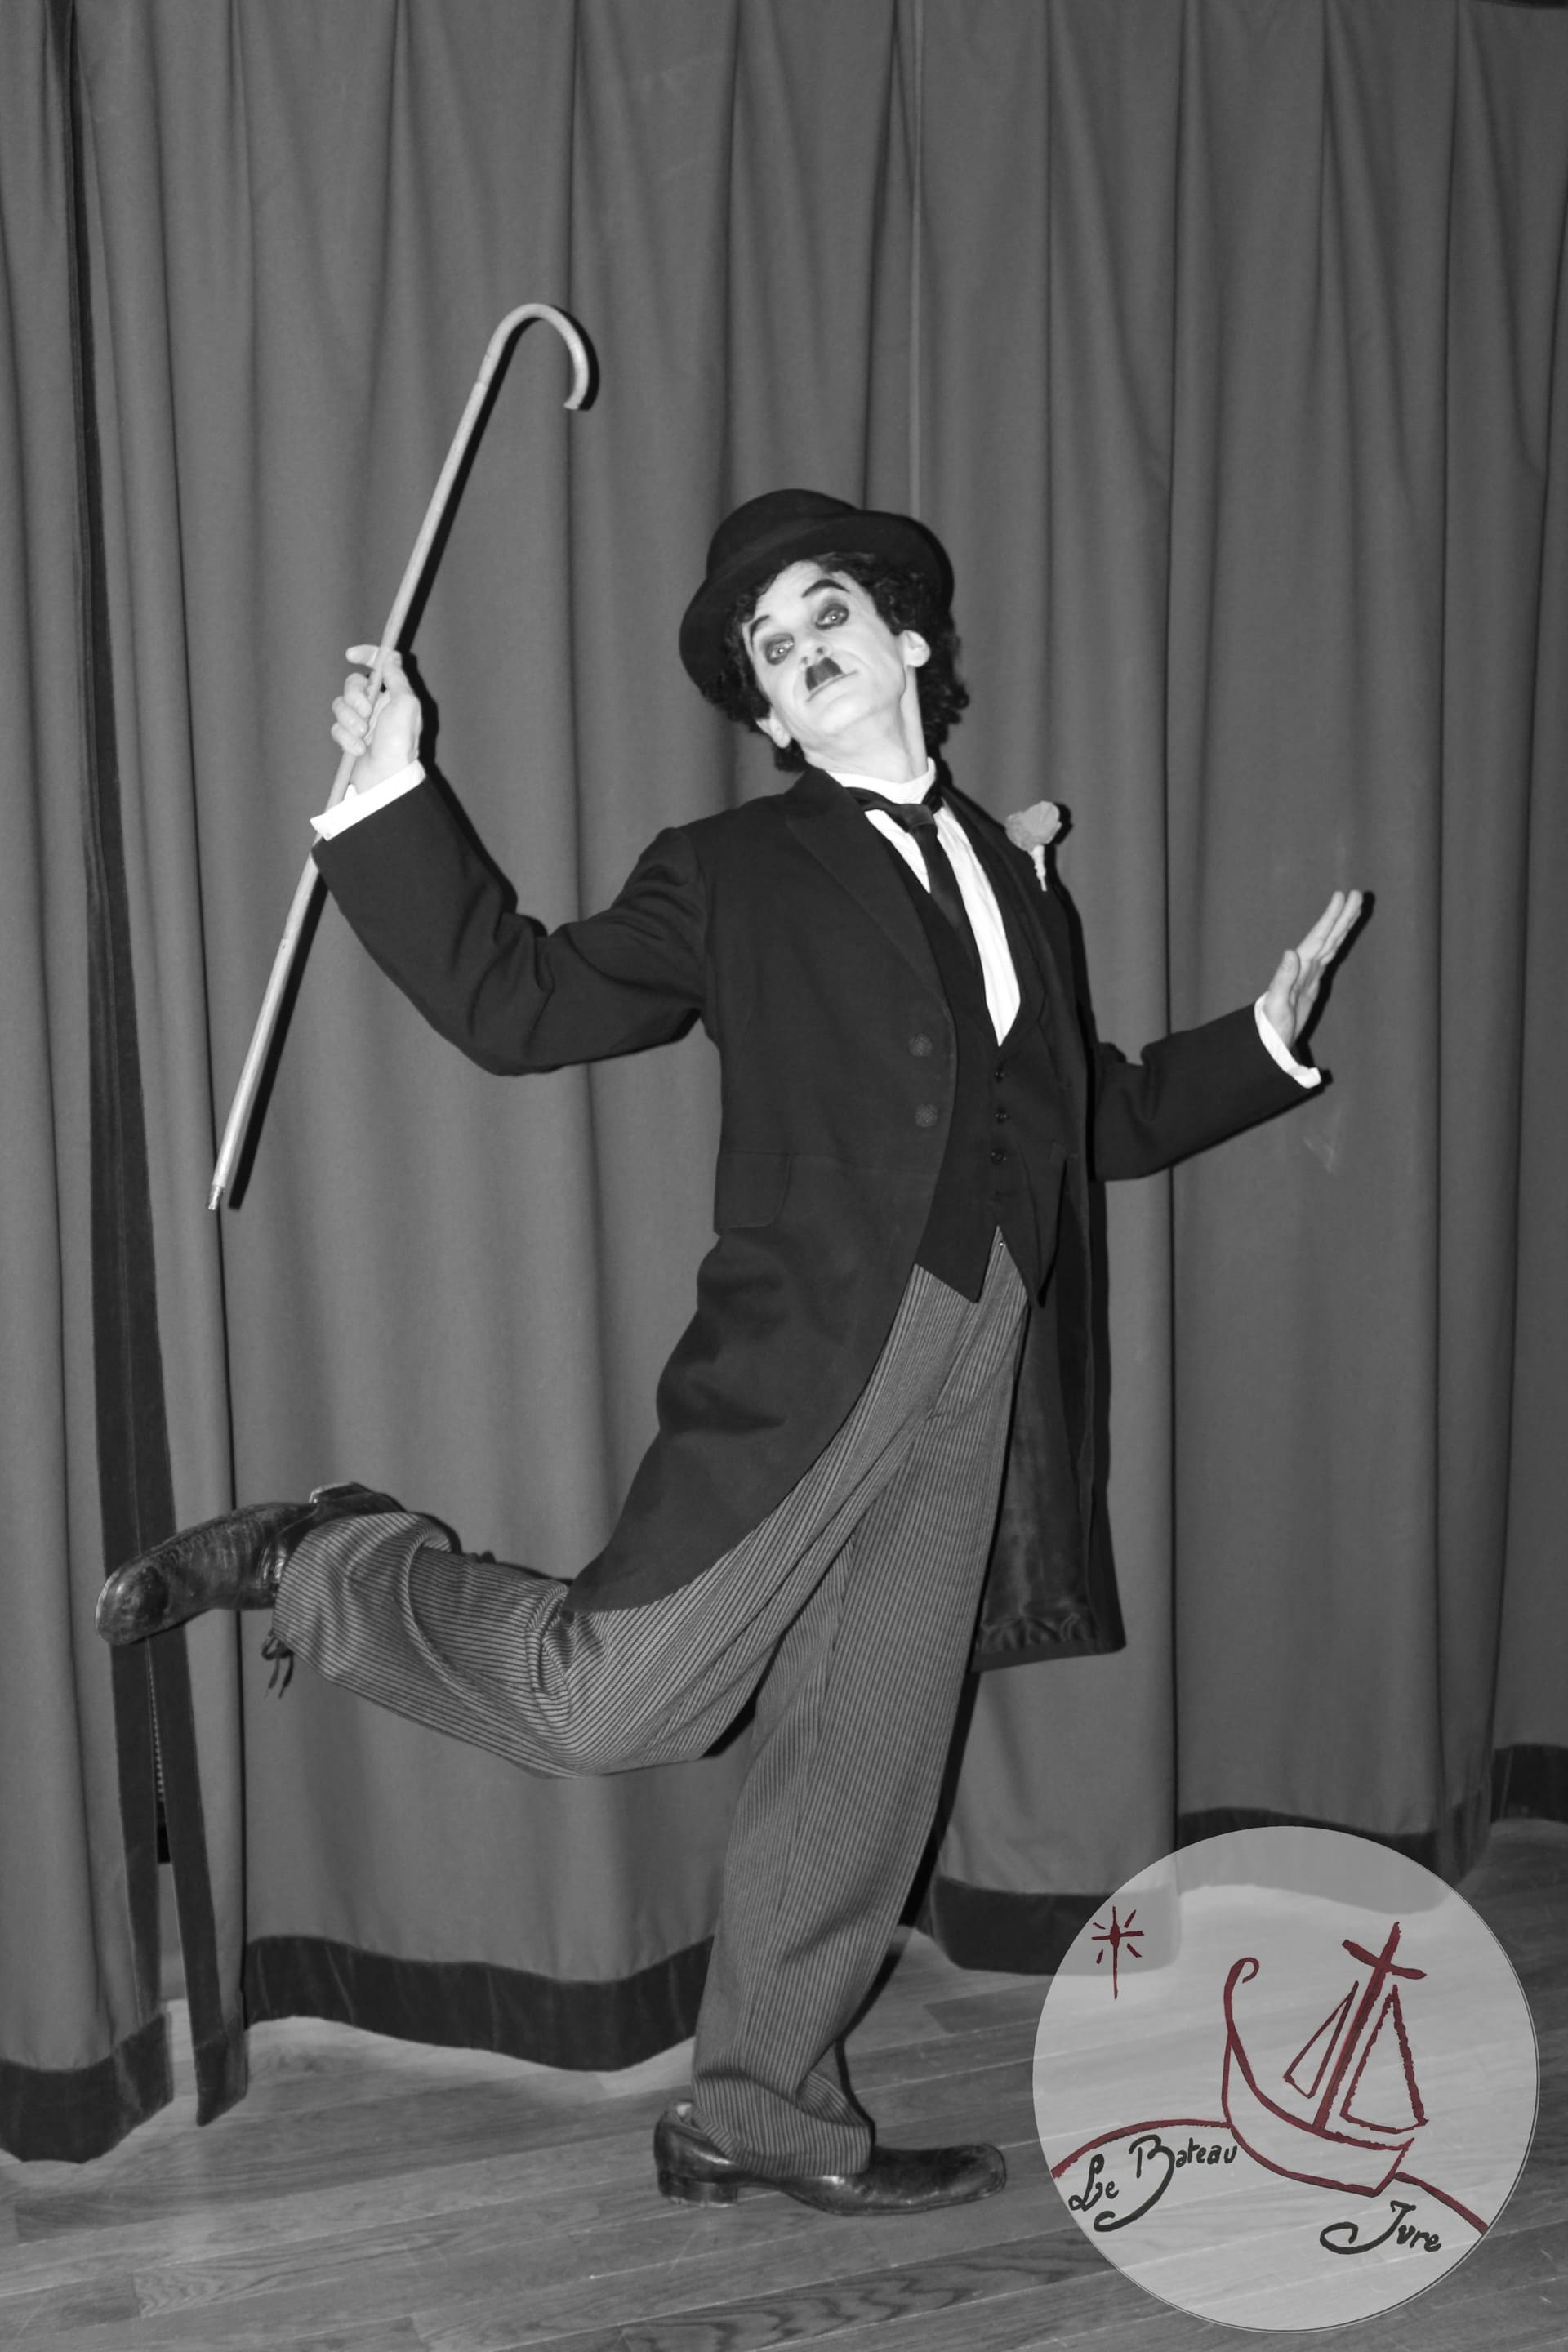 201603-charlot-artiste-mime-philippe-pillavoine-fontainebleau-02